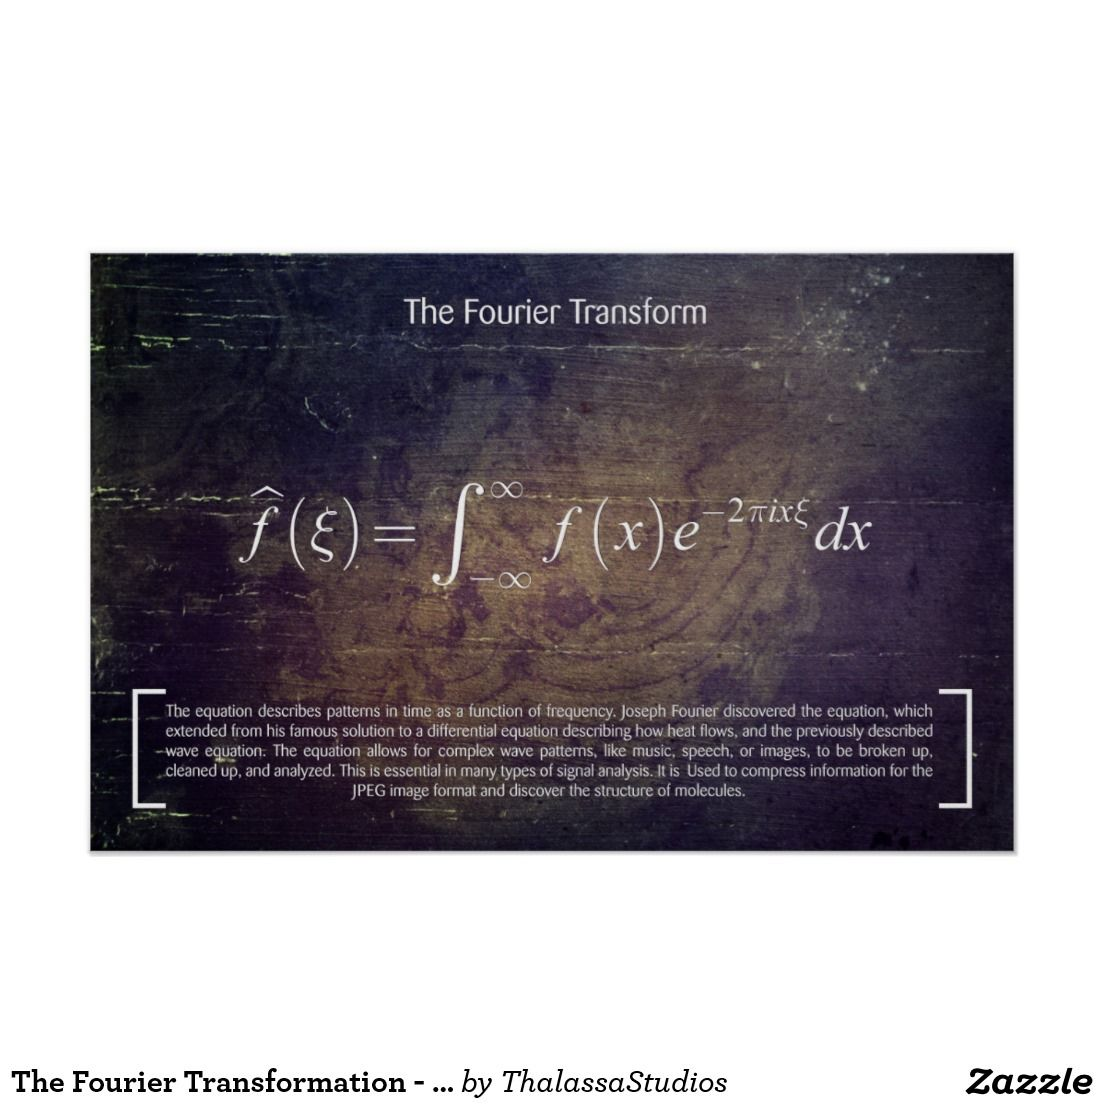 The Fourier Transformation